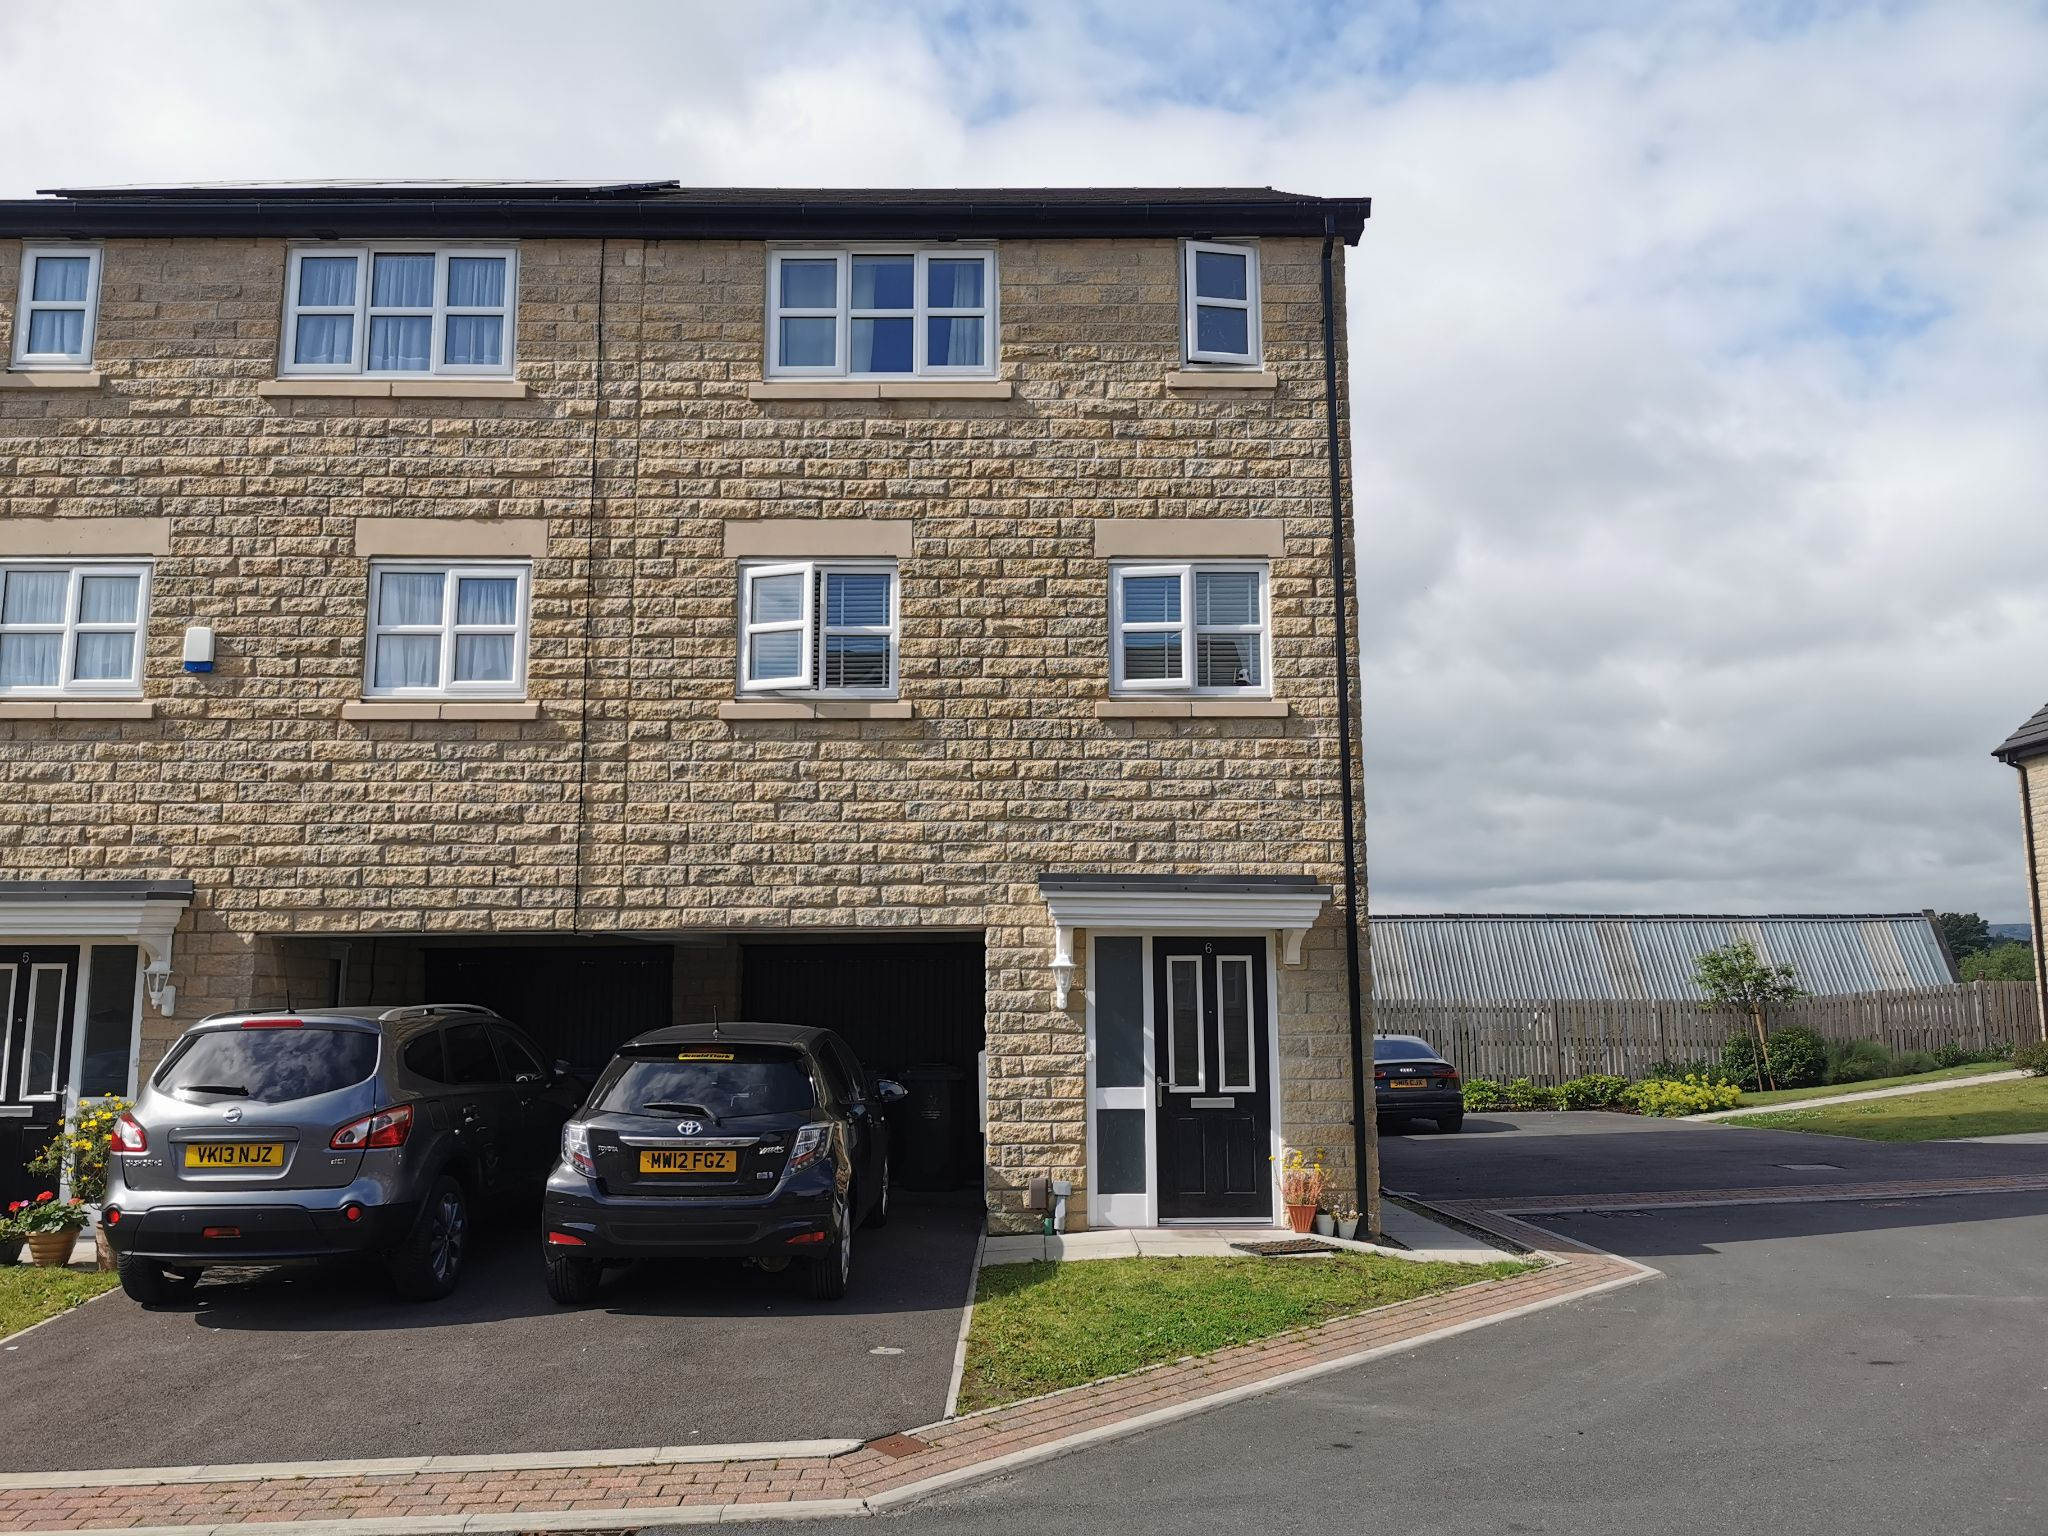 3 bedroom end terraced house For Sale in Bradford - Photograph 1.